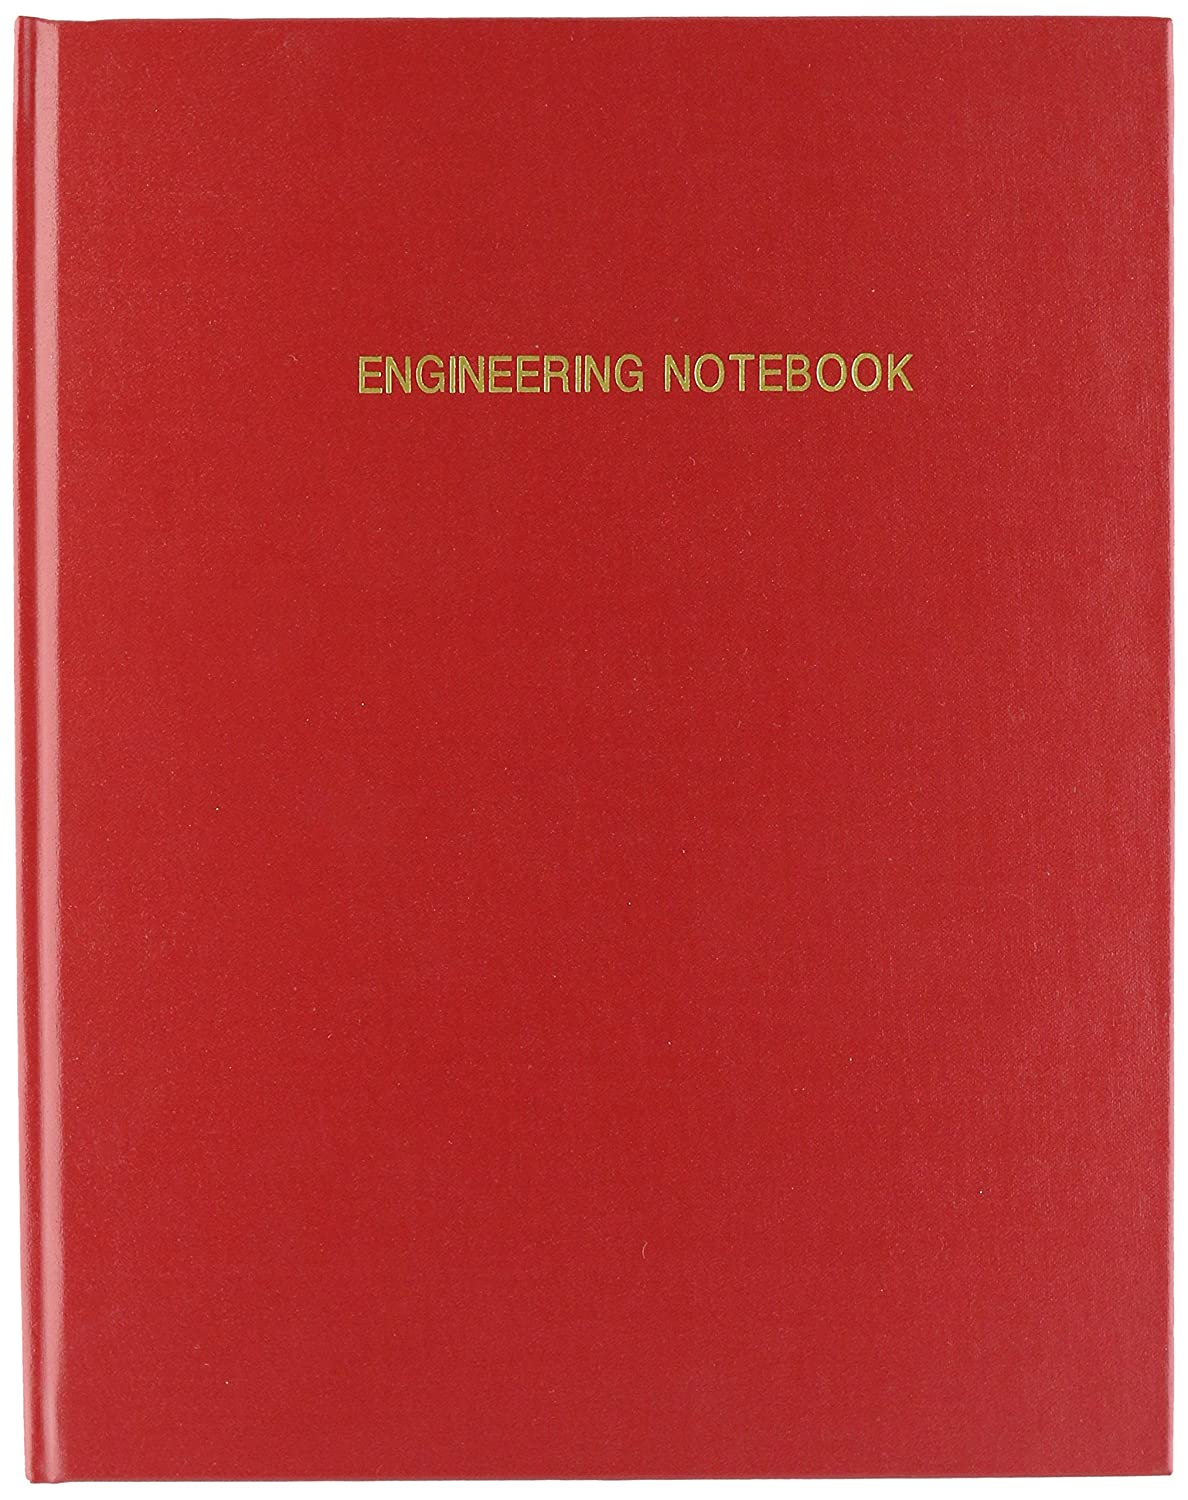 .25 Engineering Grid Format 8 x 10 Engineering Lab Notebook Red Cover Smyth Sewn Hardbound 168 Pages EPRIL-168-SGS-LRT4 BookFactory Red Engineering Notebook